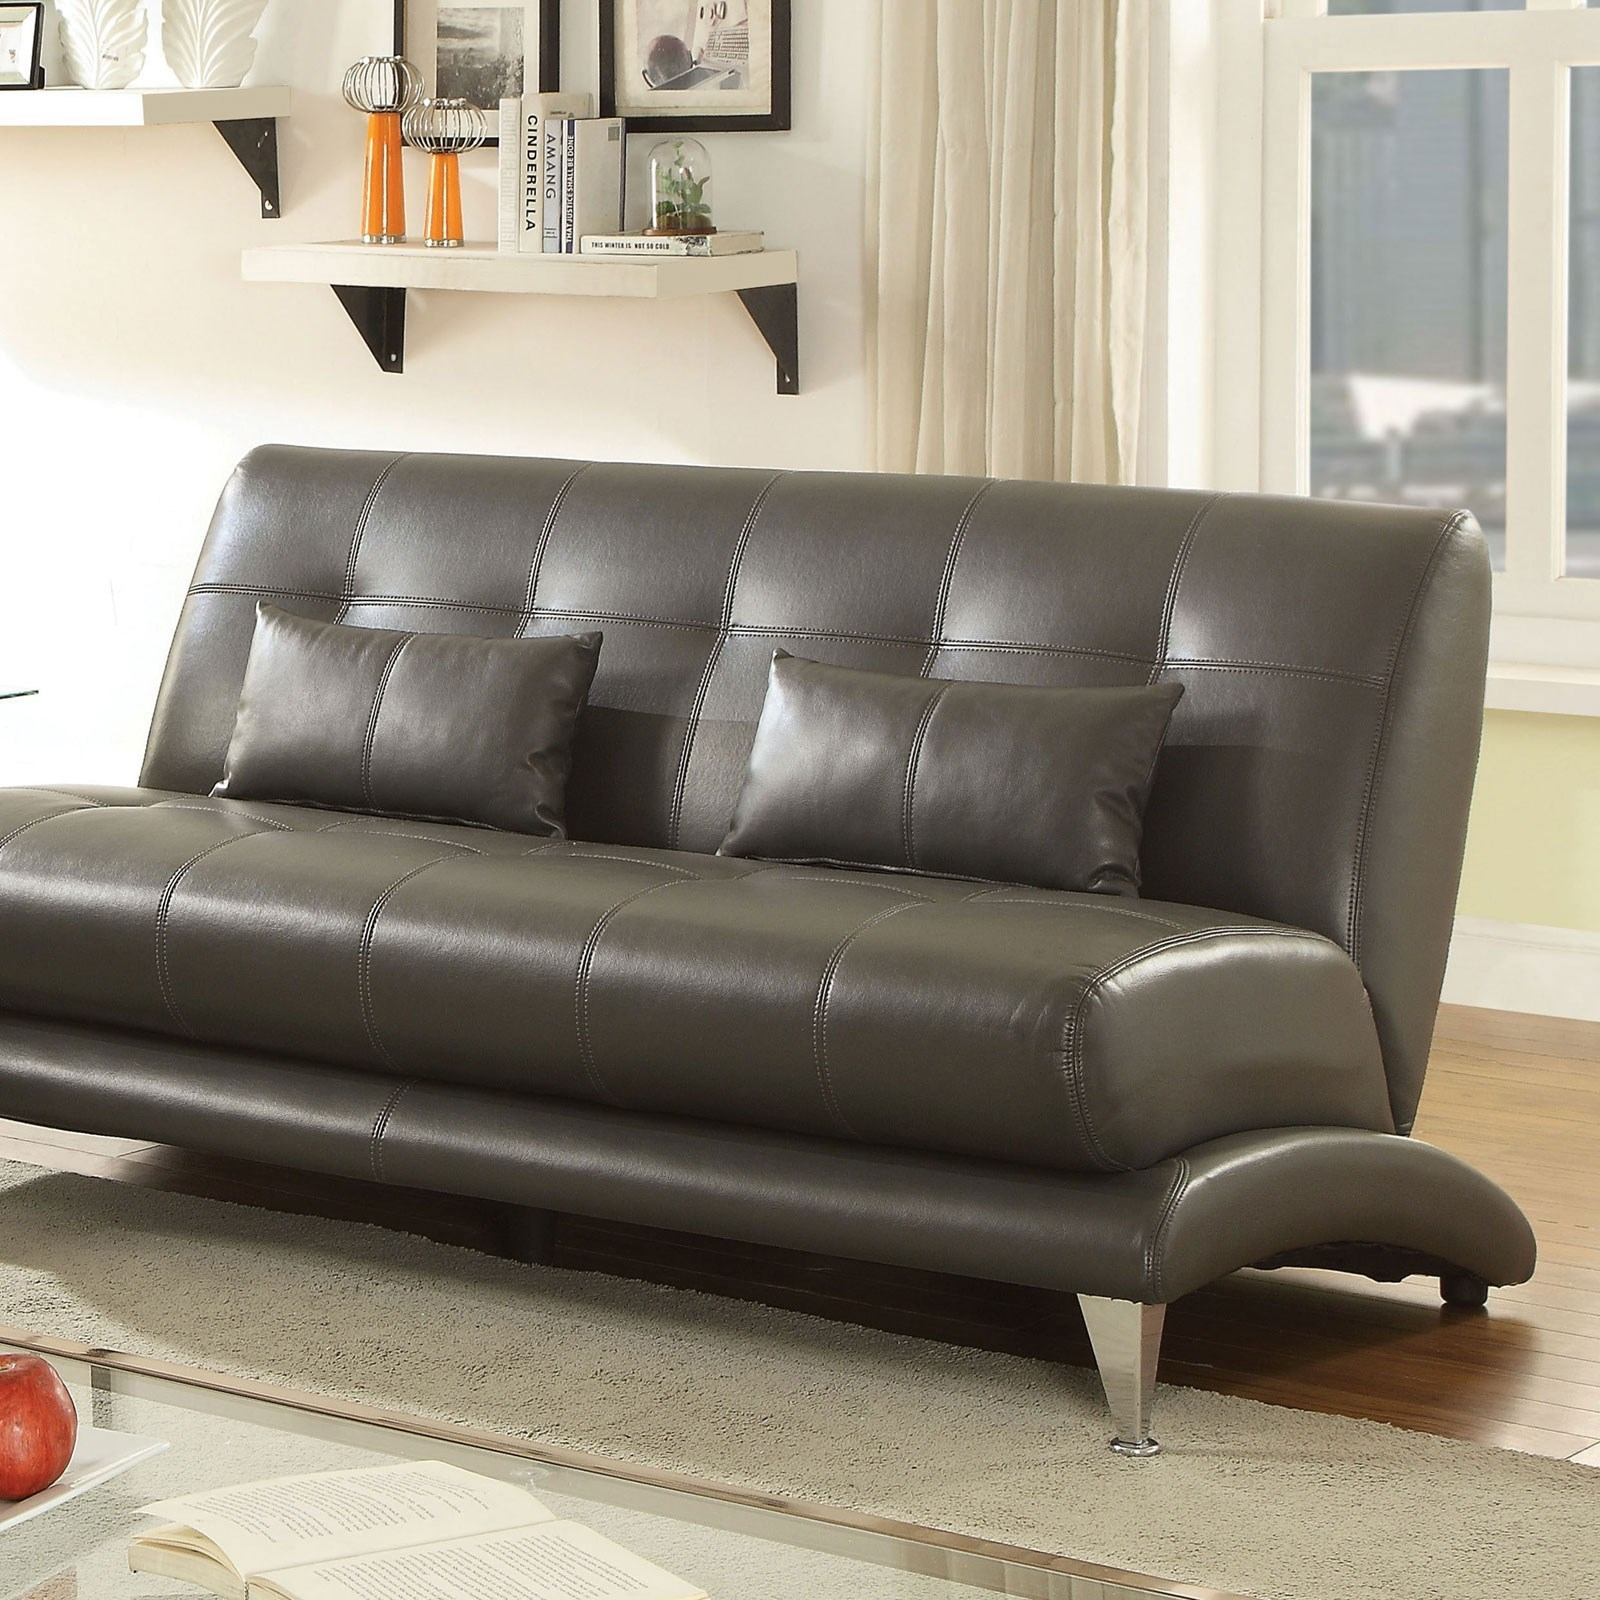 Sherri Contemporary Tufted Sofa With Pillows By Furniture Of America At Dream Home Furniture